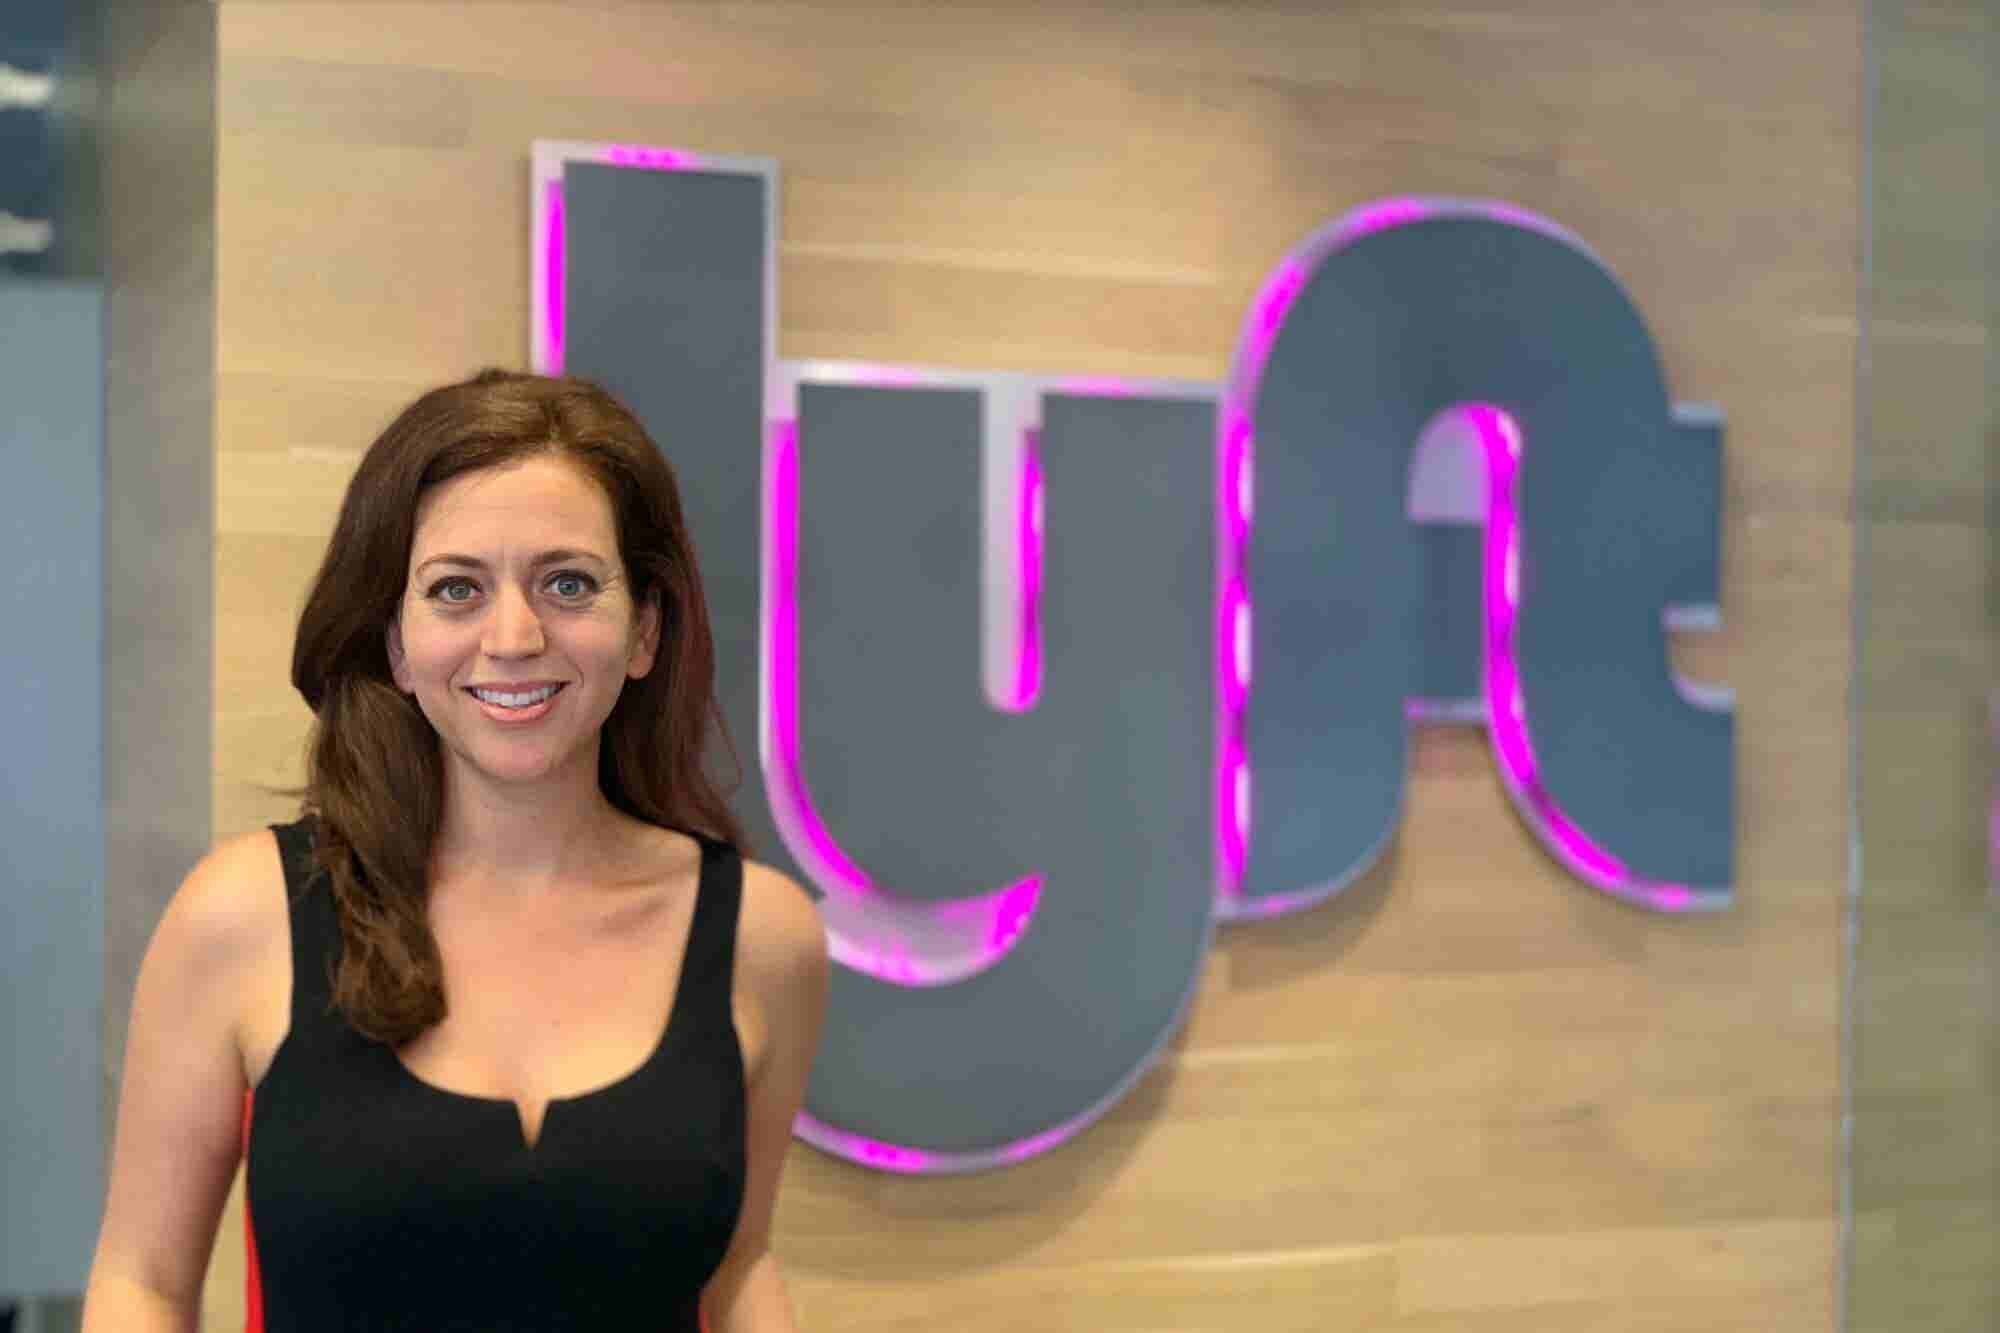 This Lyft Employee's Entrepreneurial Past Inspired Her to Create a Bus...